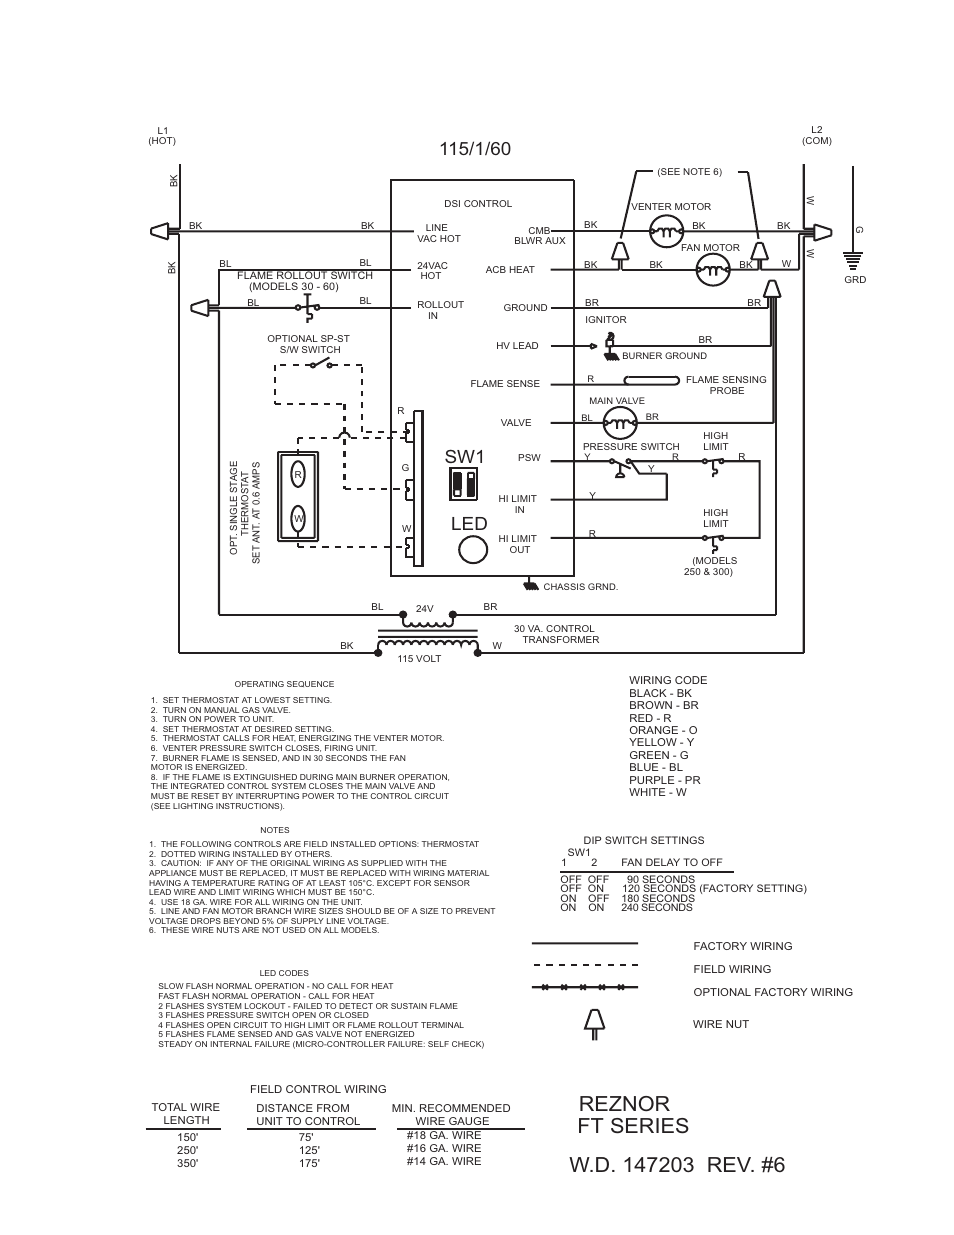 reznor ft unit installation manual page13 reznor furnace wiring diagram reznor wiring schematic oil pump olsen furnace wiring diagram at mifinder.co